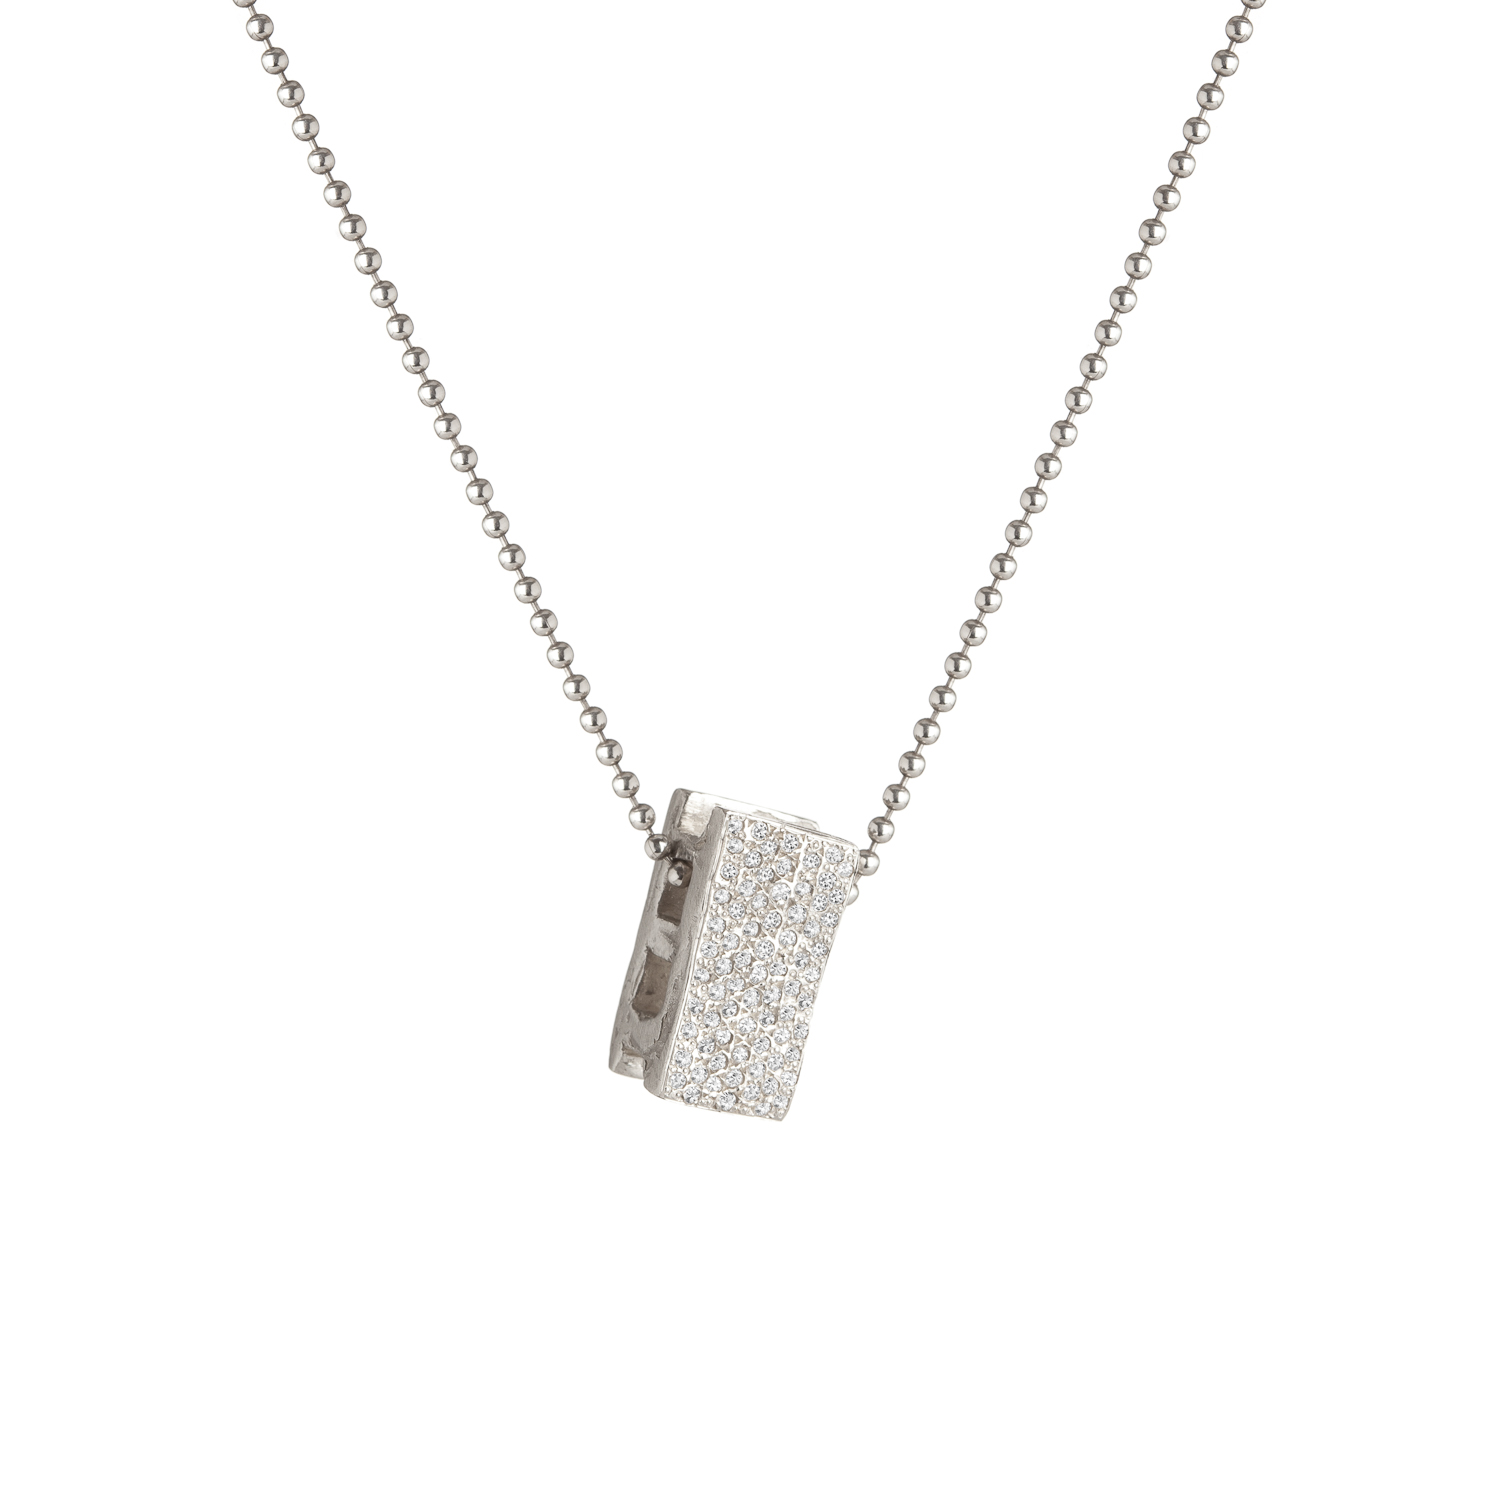 Cinder block | sterling silver and grey diamonds